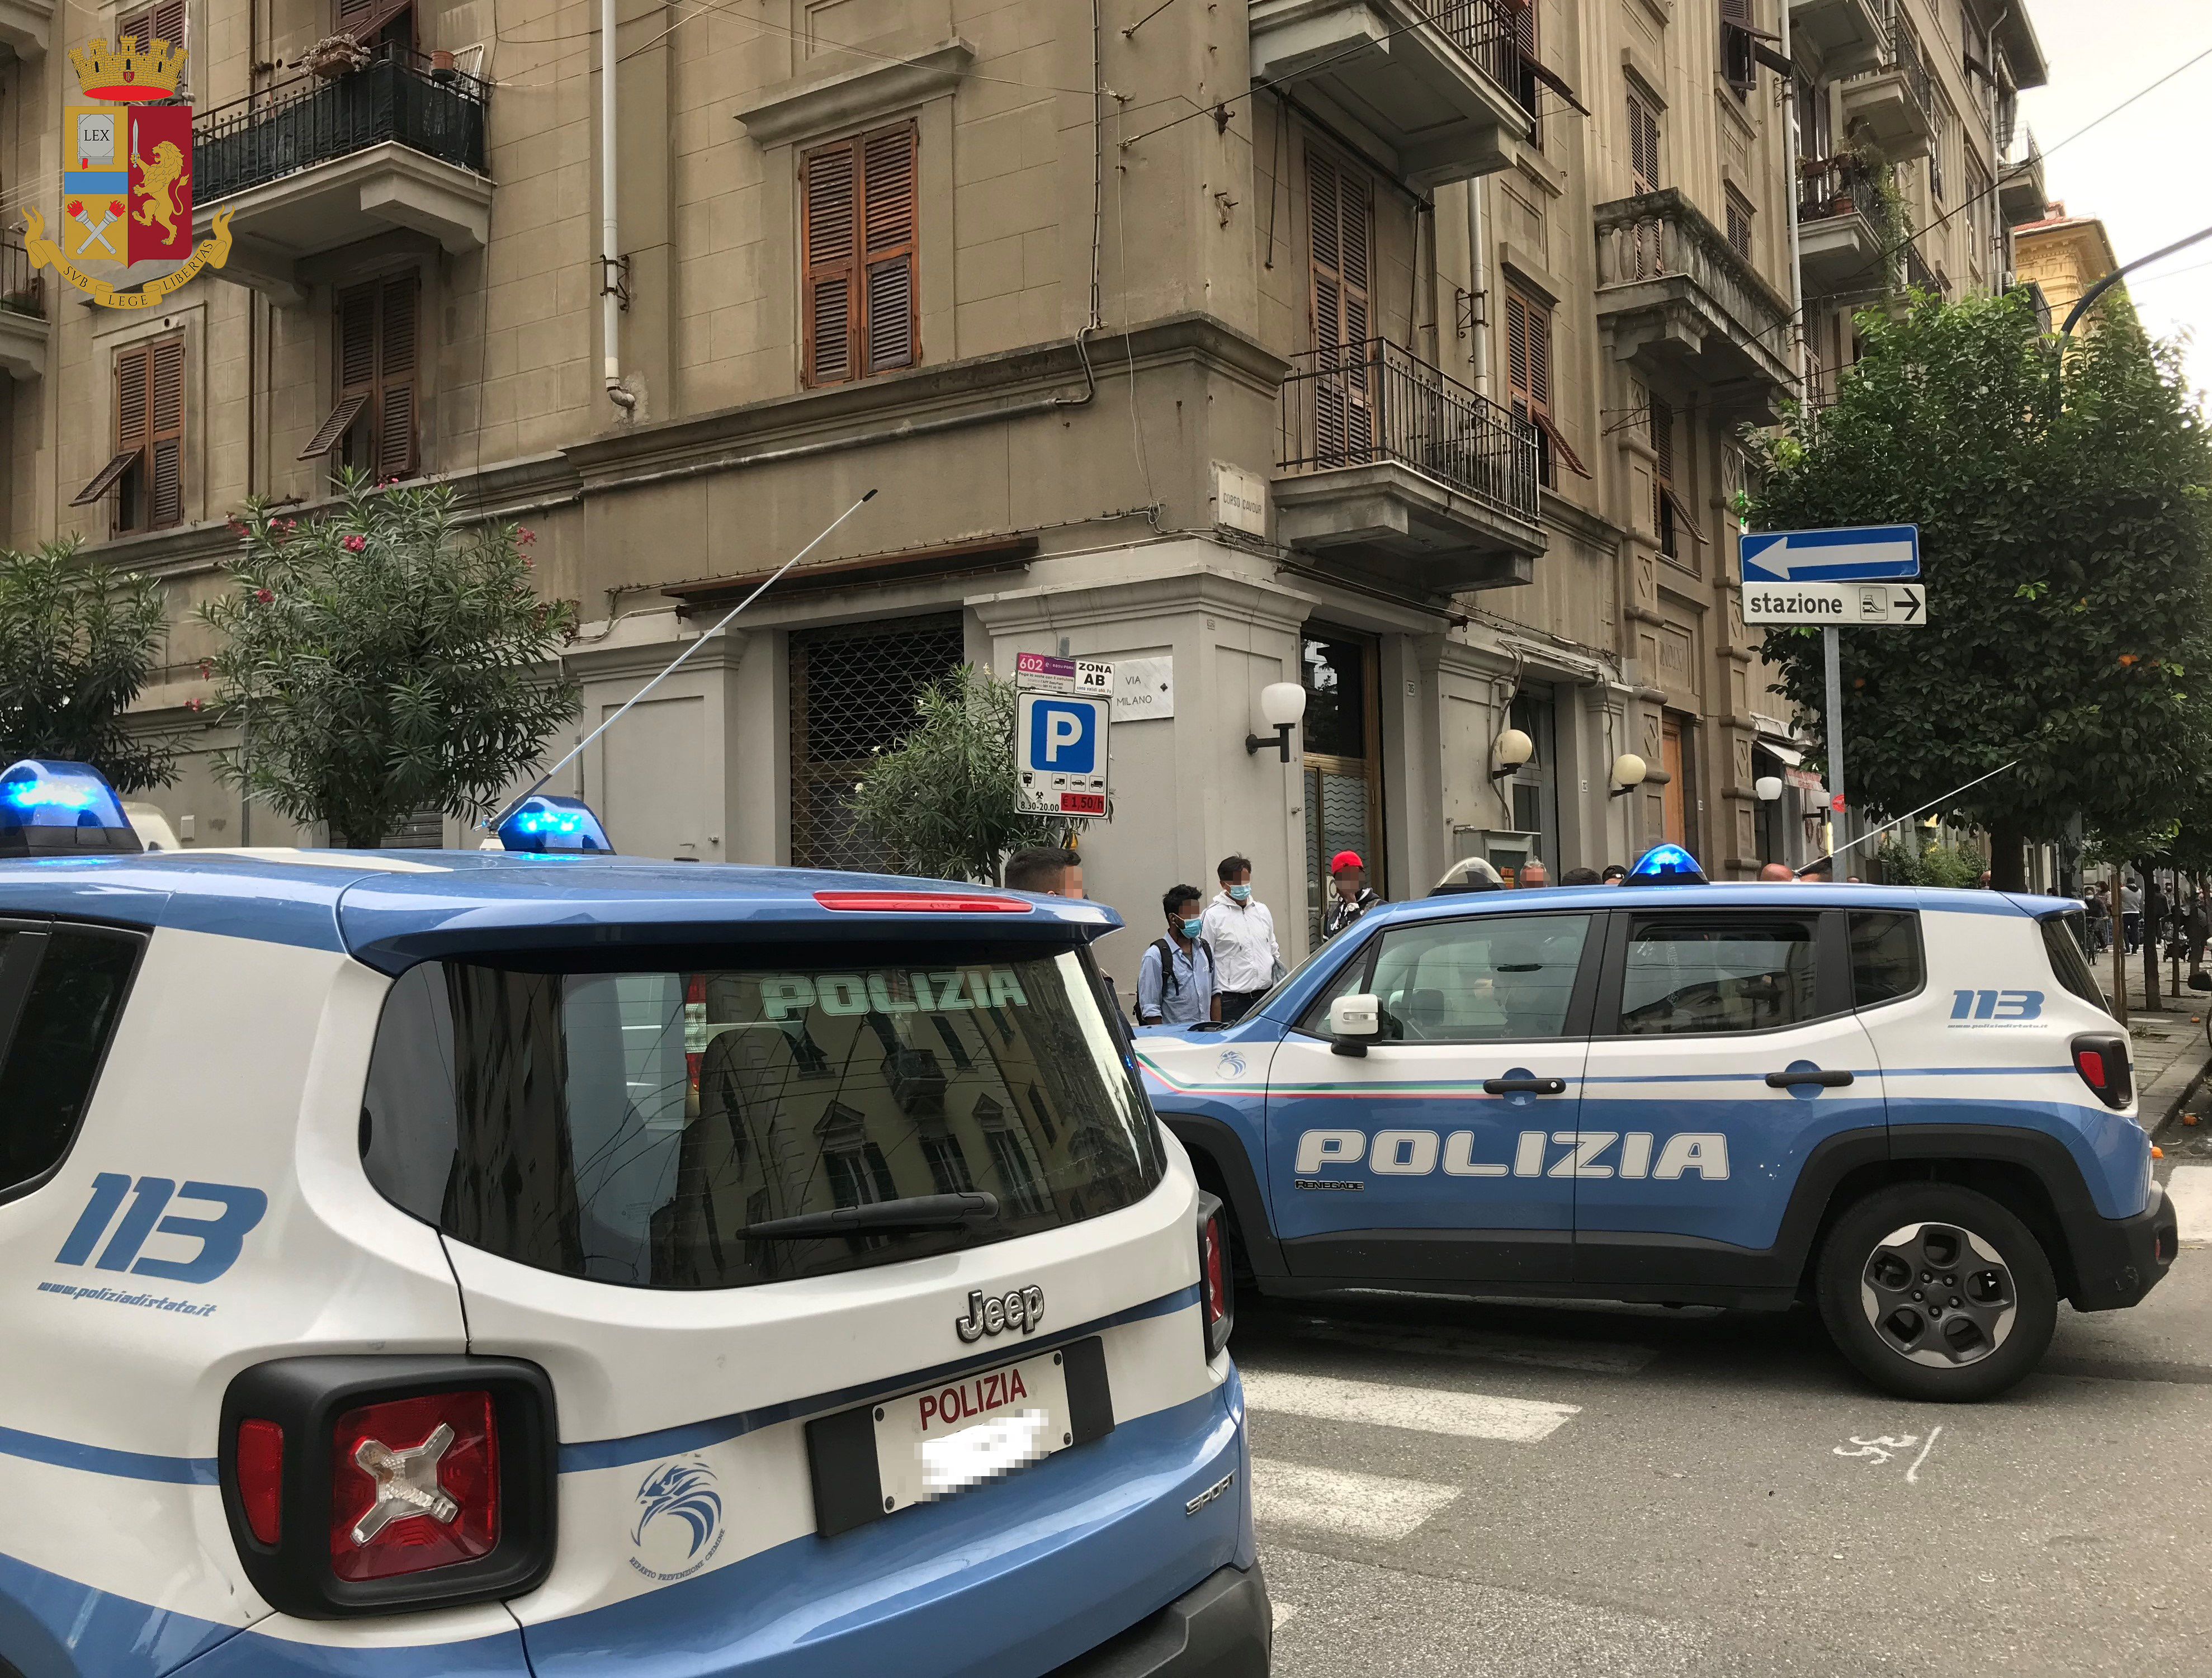 POLIZIA DI STATO: CONTROLLI SERRATI ANTICRIMINE E ANTICONTAGIO  E PRESIDIO INTERFORZE SULLA MOVIDA